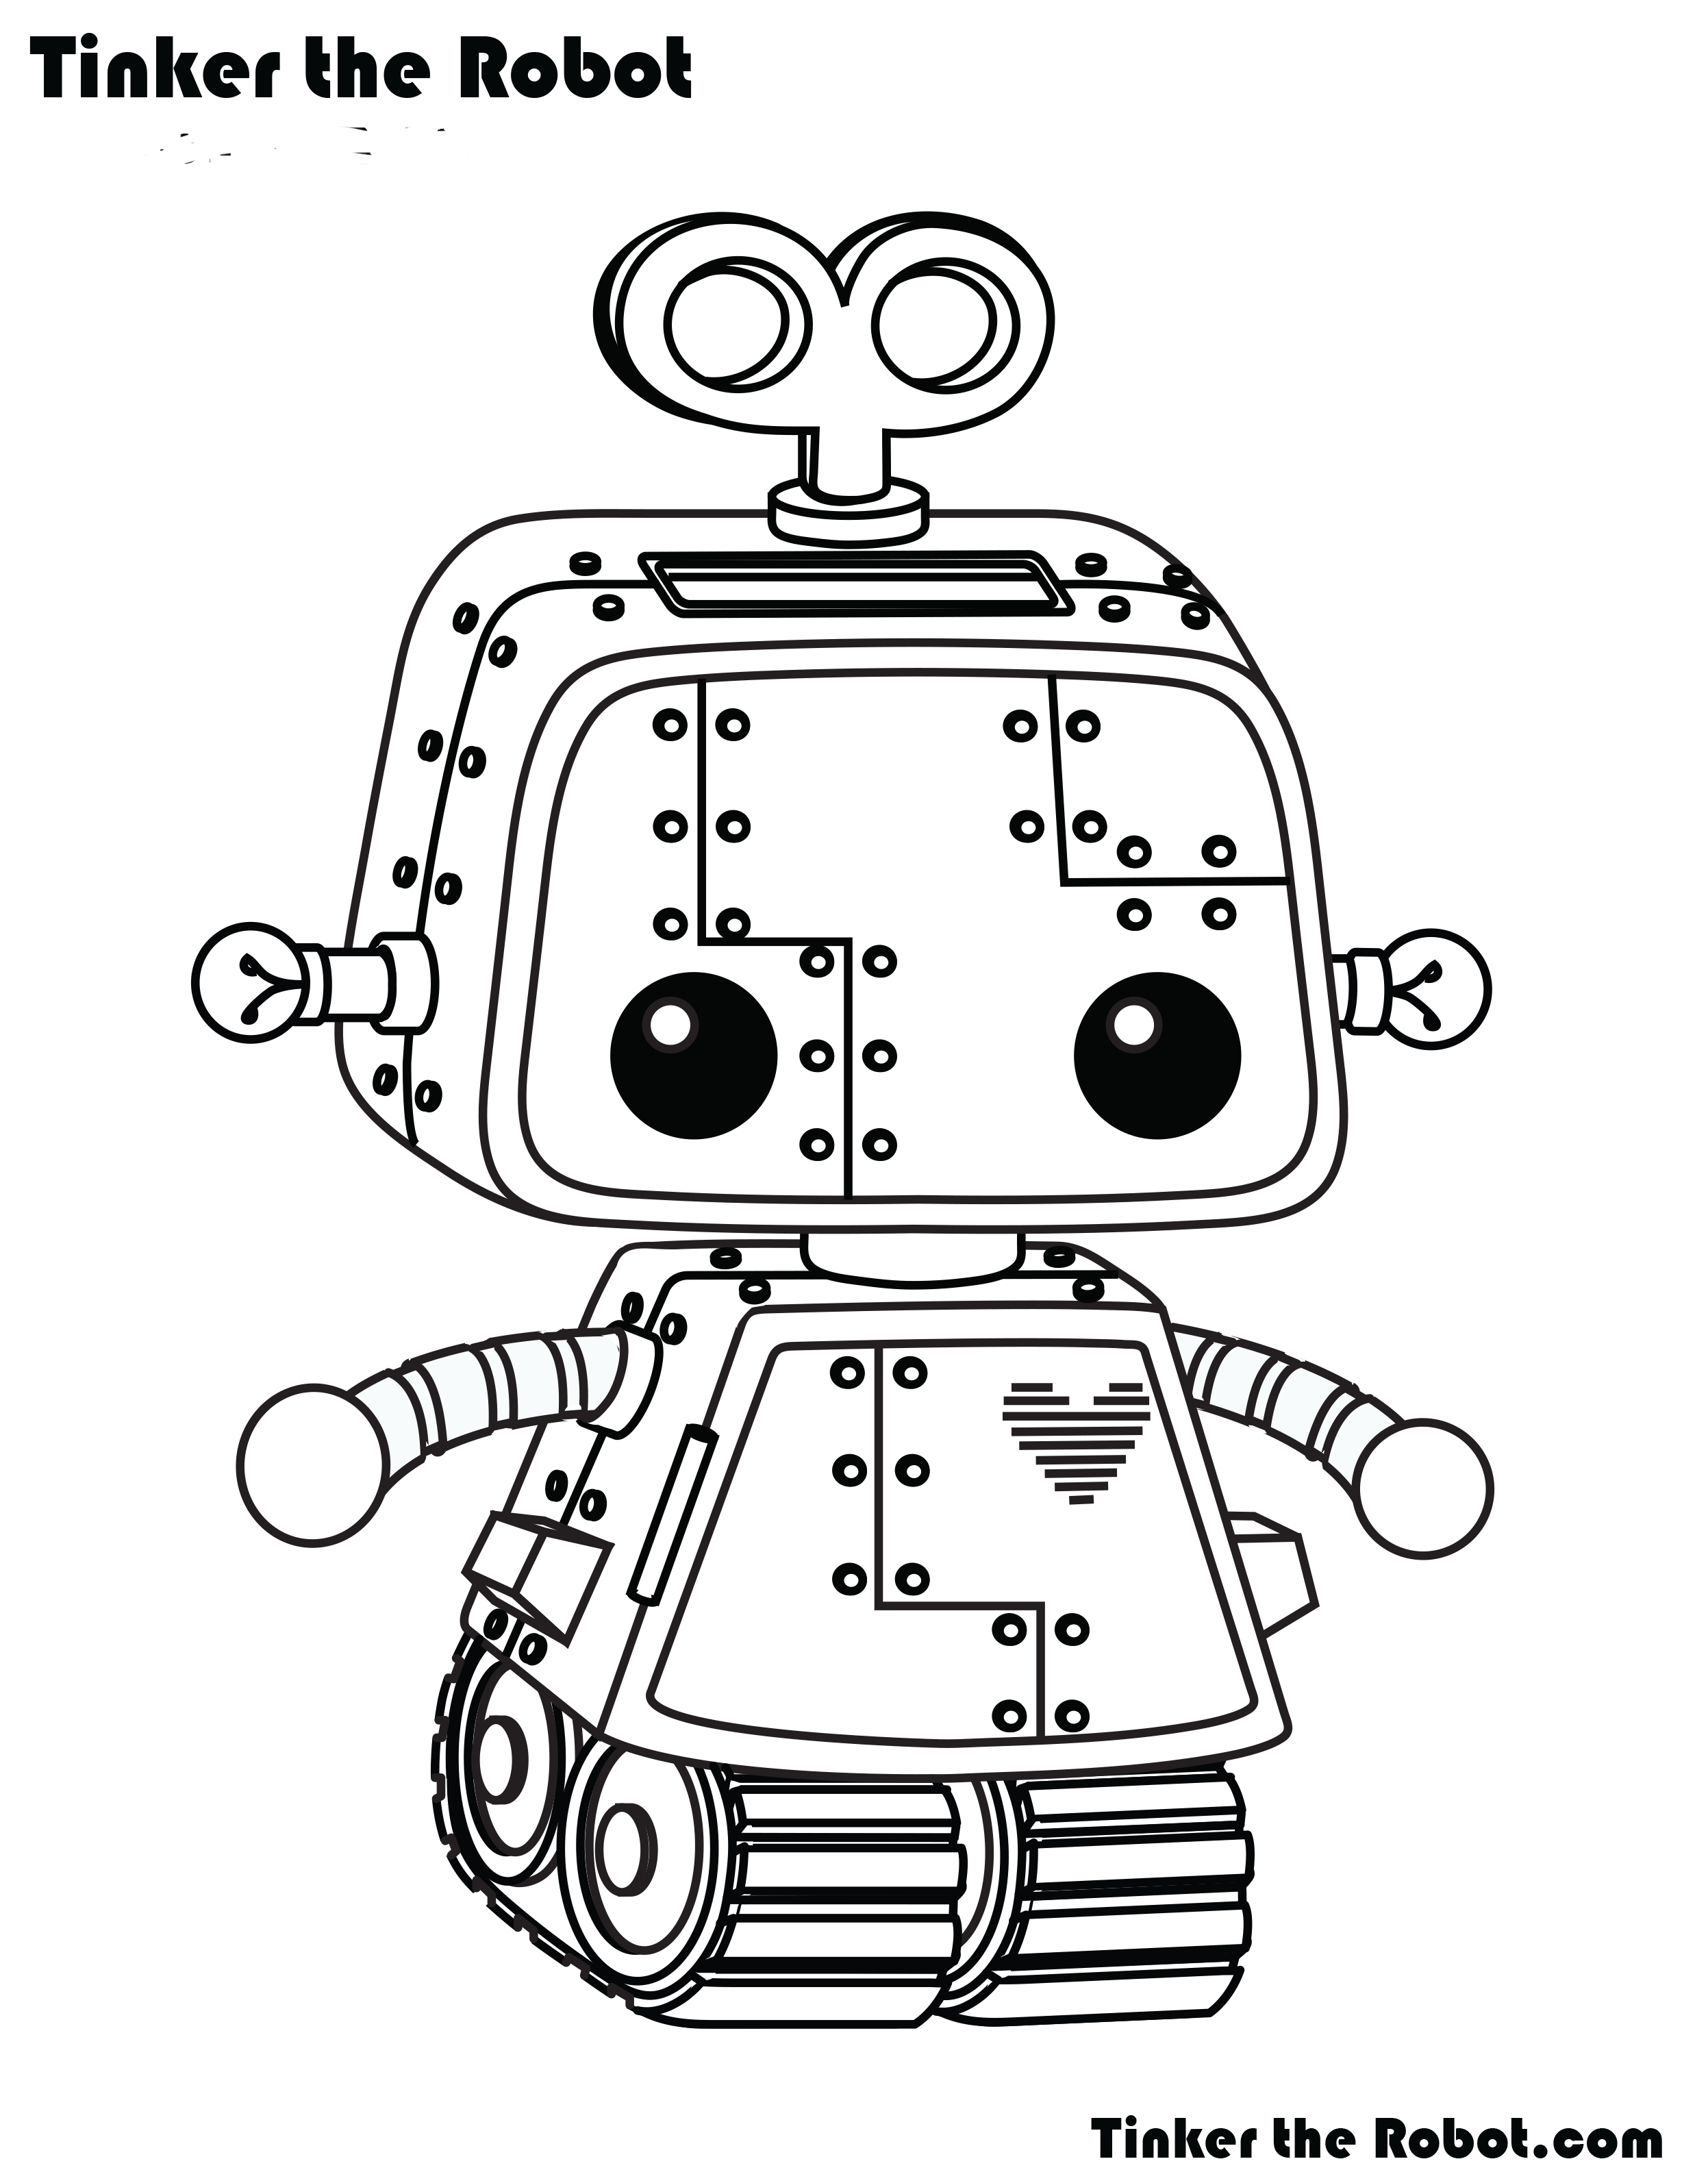 tinker the robot